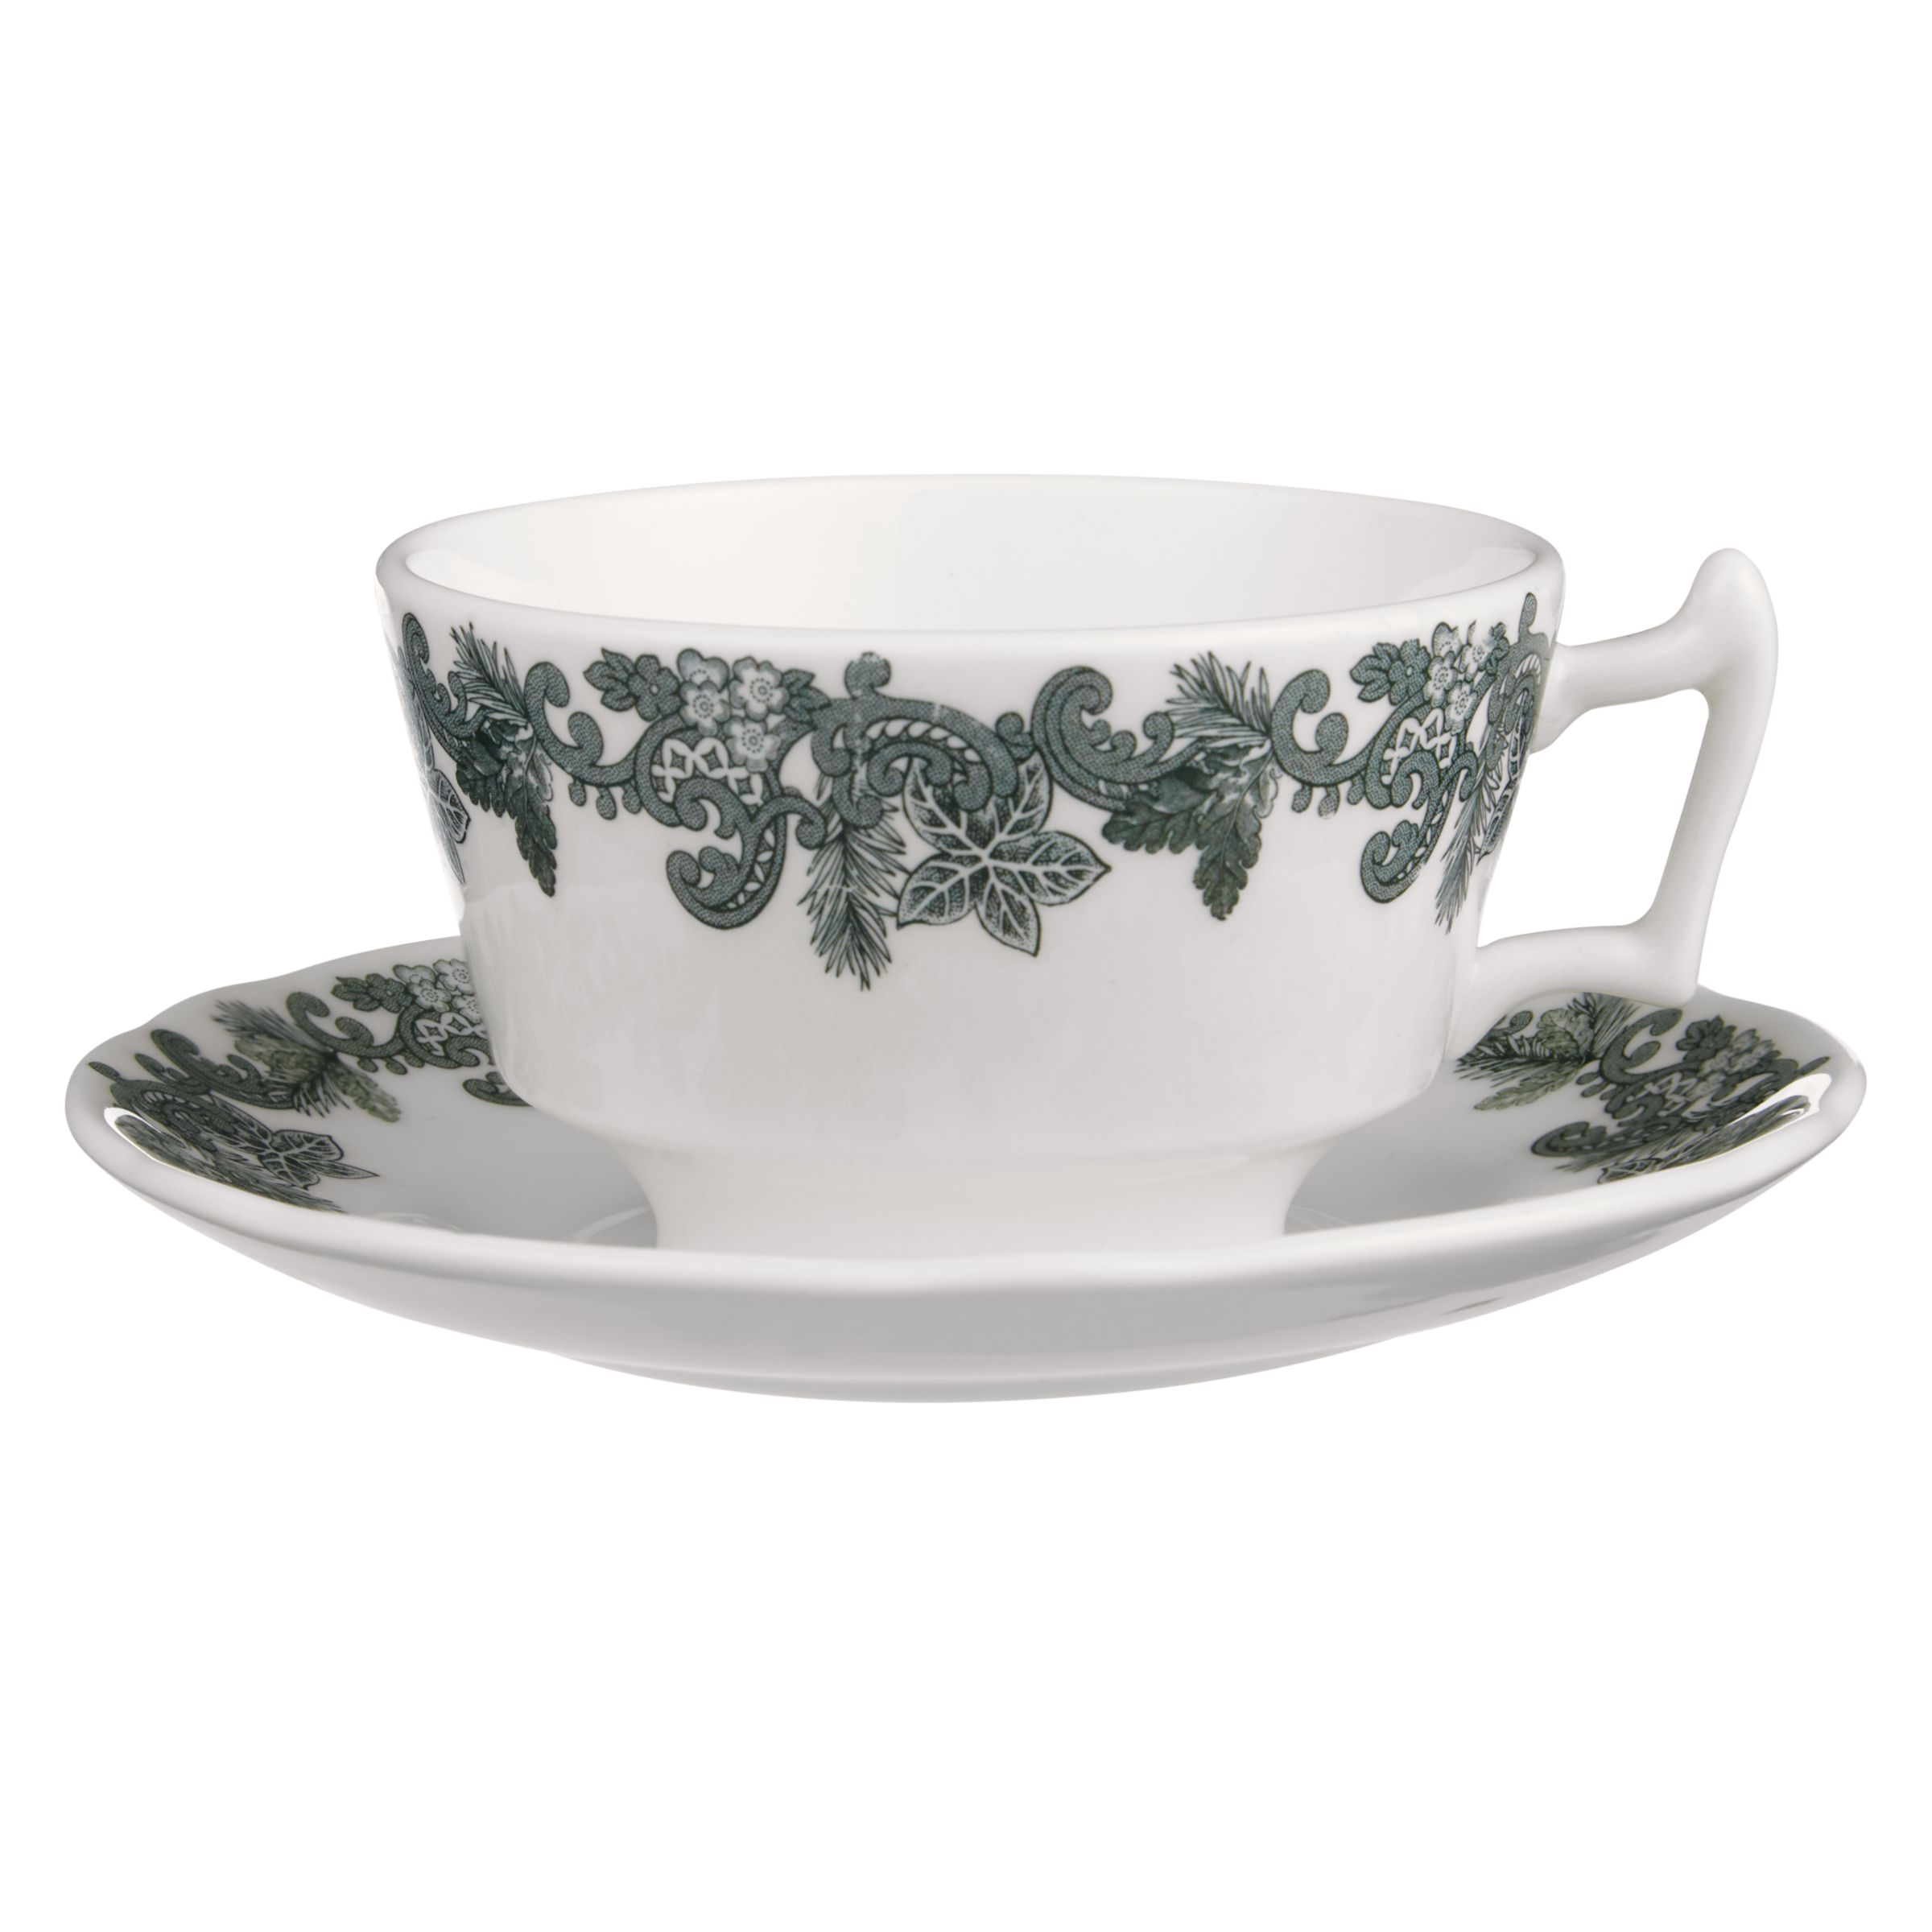 Spode Spode Ruskin House Teacup and Saucer Set, Green / White